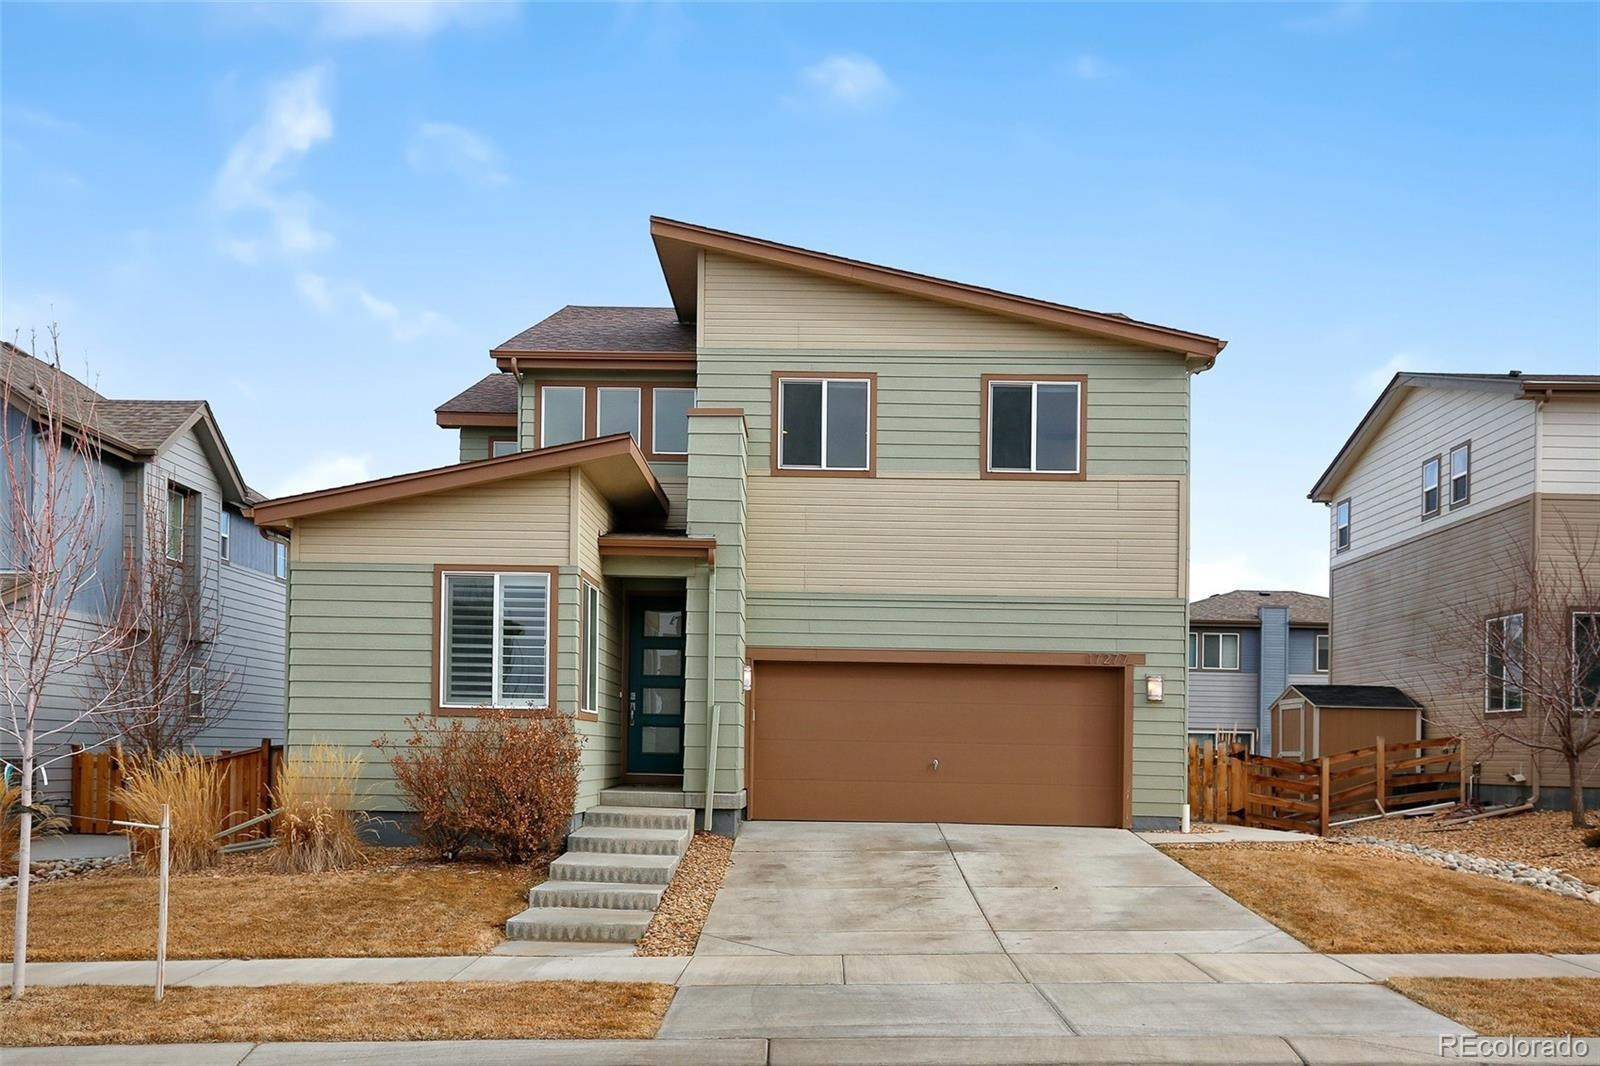 MLS# 2010452 - 1 - 17277 E 108th Place, Commerce City, CO 80022